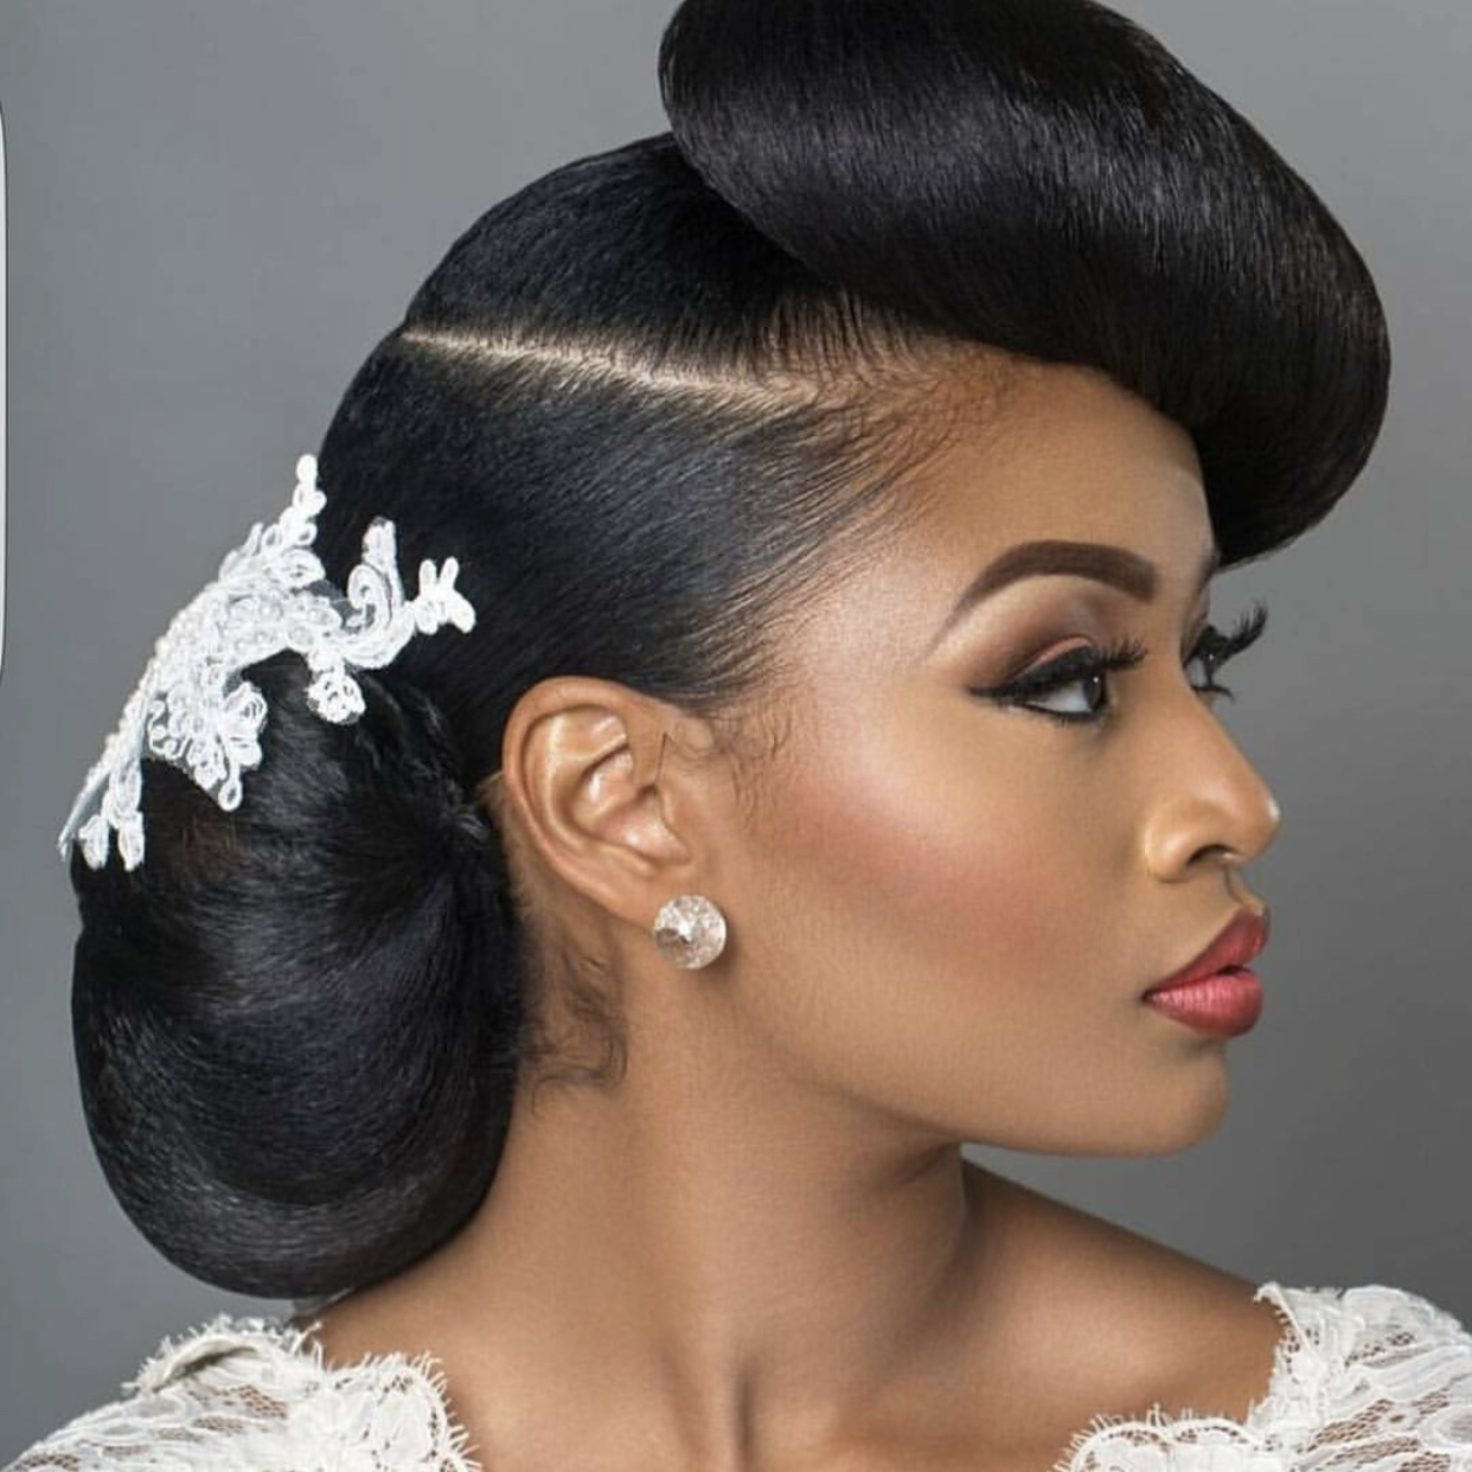 13 Natural Hairstyles For Your Wedding Day Slay – Essence In Newest Naturally Textured Updo Hairstyles (Gallery 13 of 20)